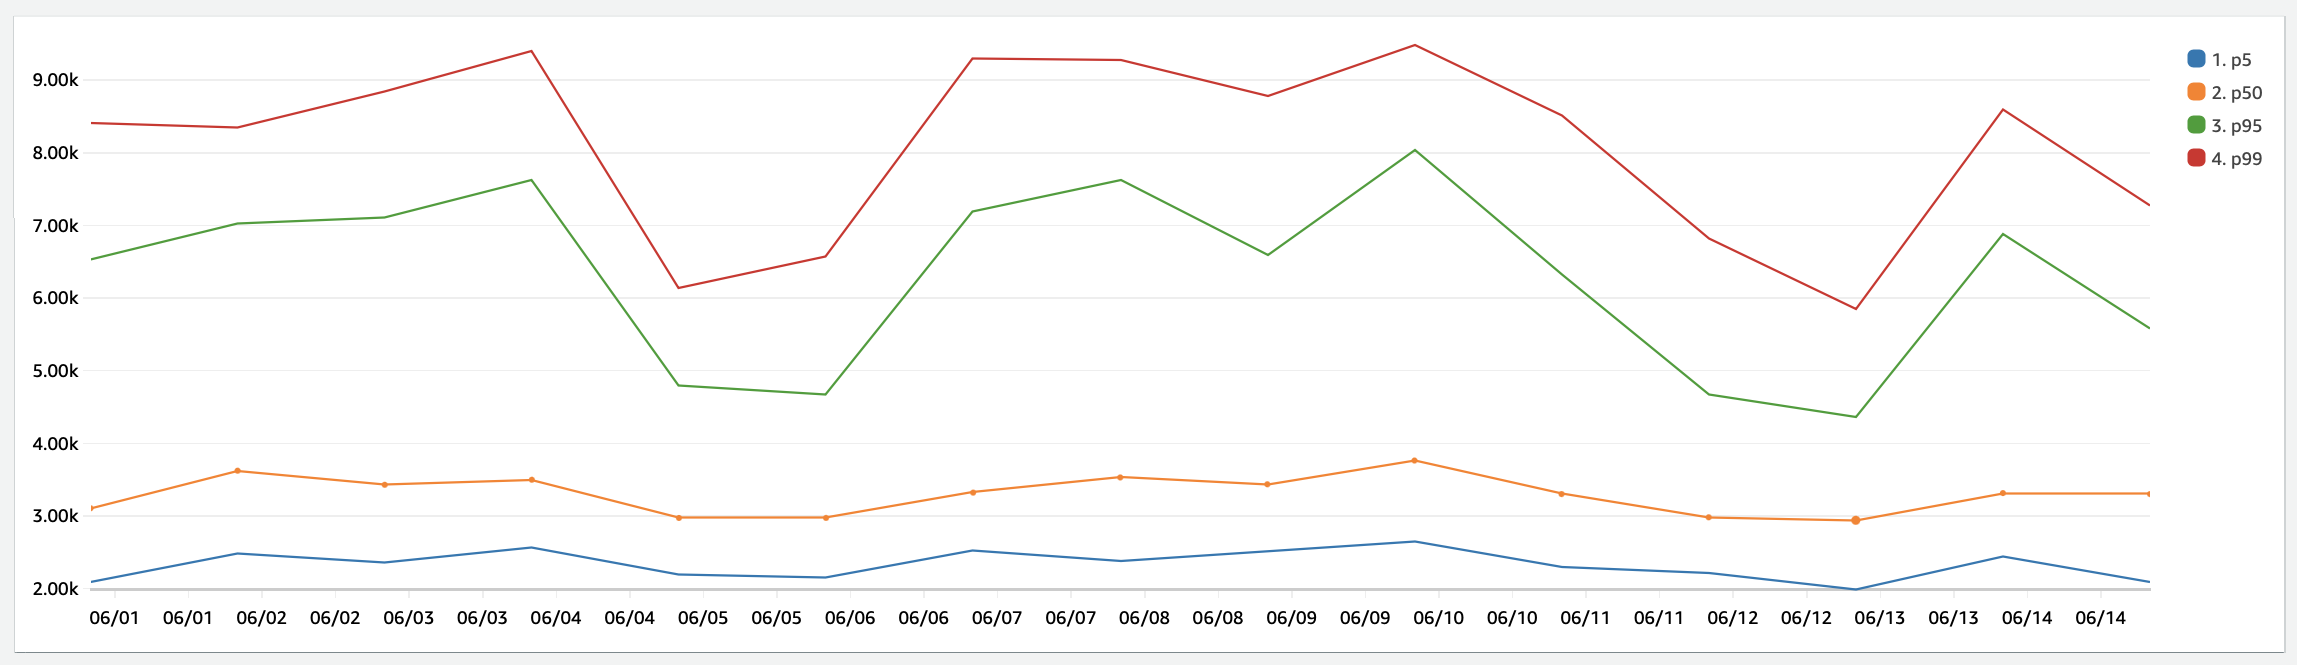 Rails cold start data from CloudWatch Insights. Shows percentiles for p5, p50, p95, and p99.